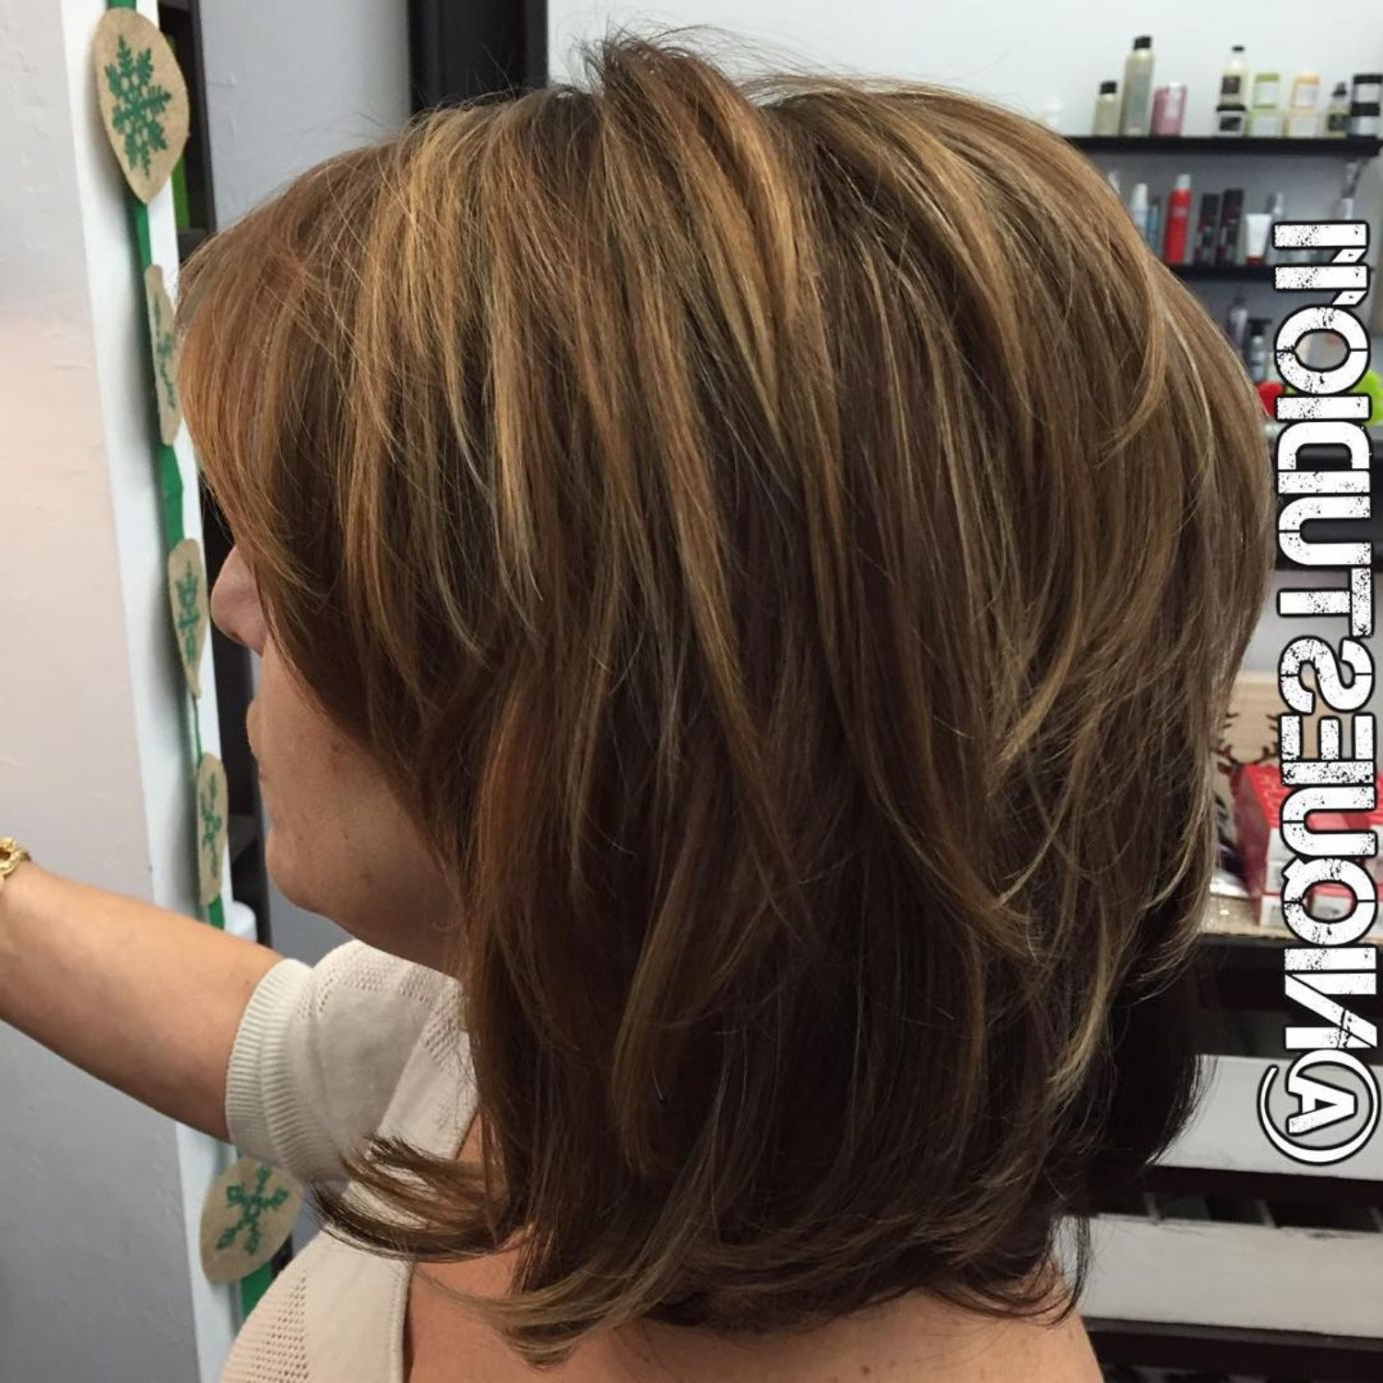 80 Best Modern Haircuts And Hairstyles For Women Over (View 12 of 20)